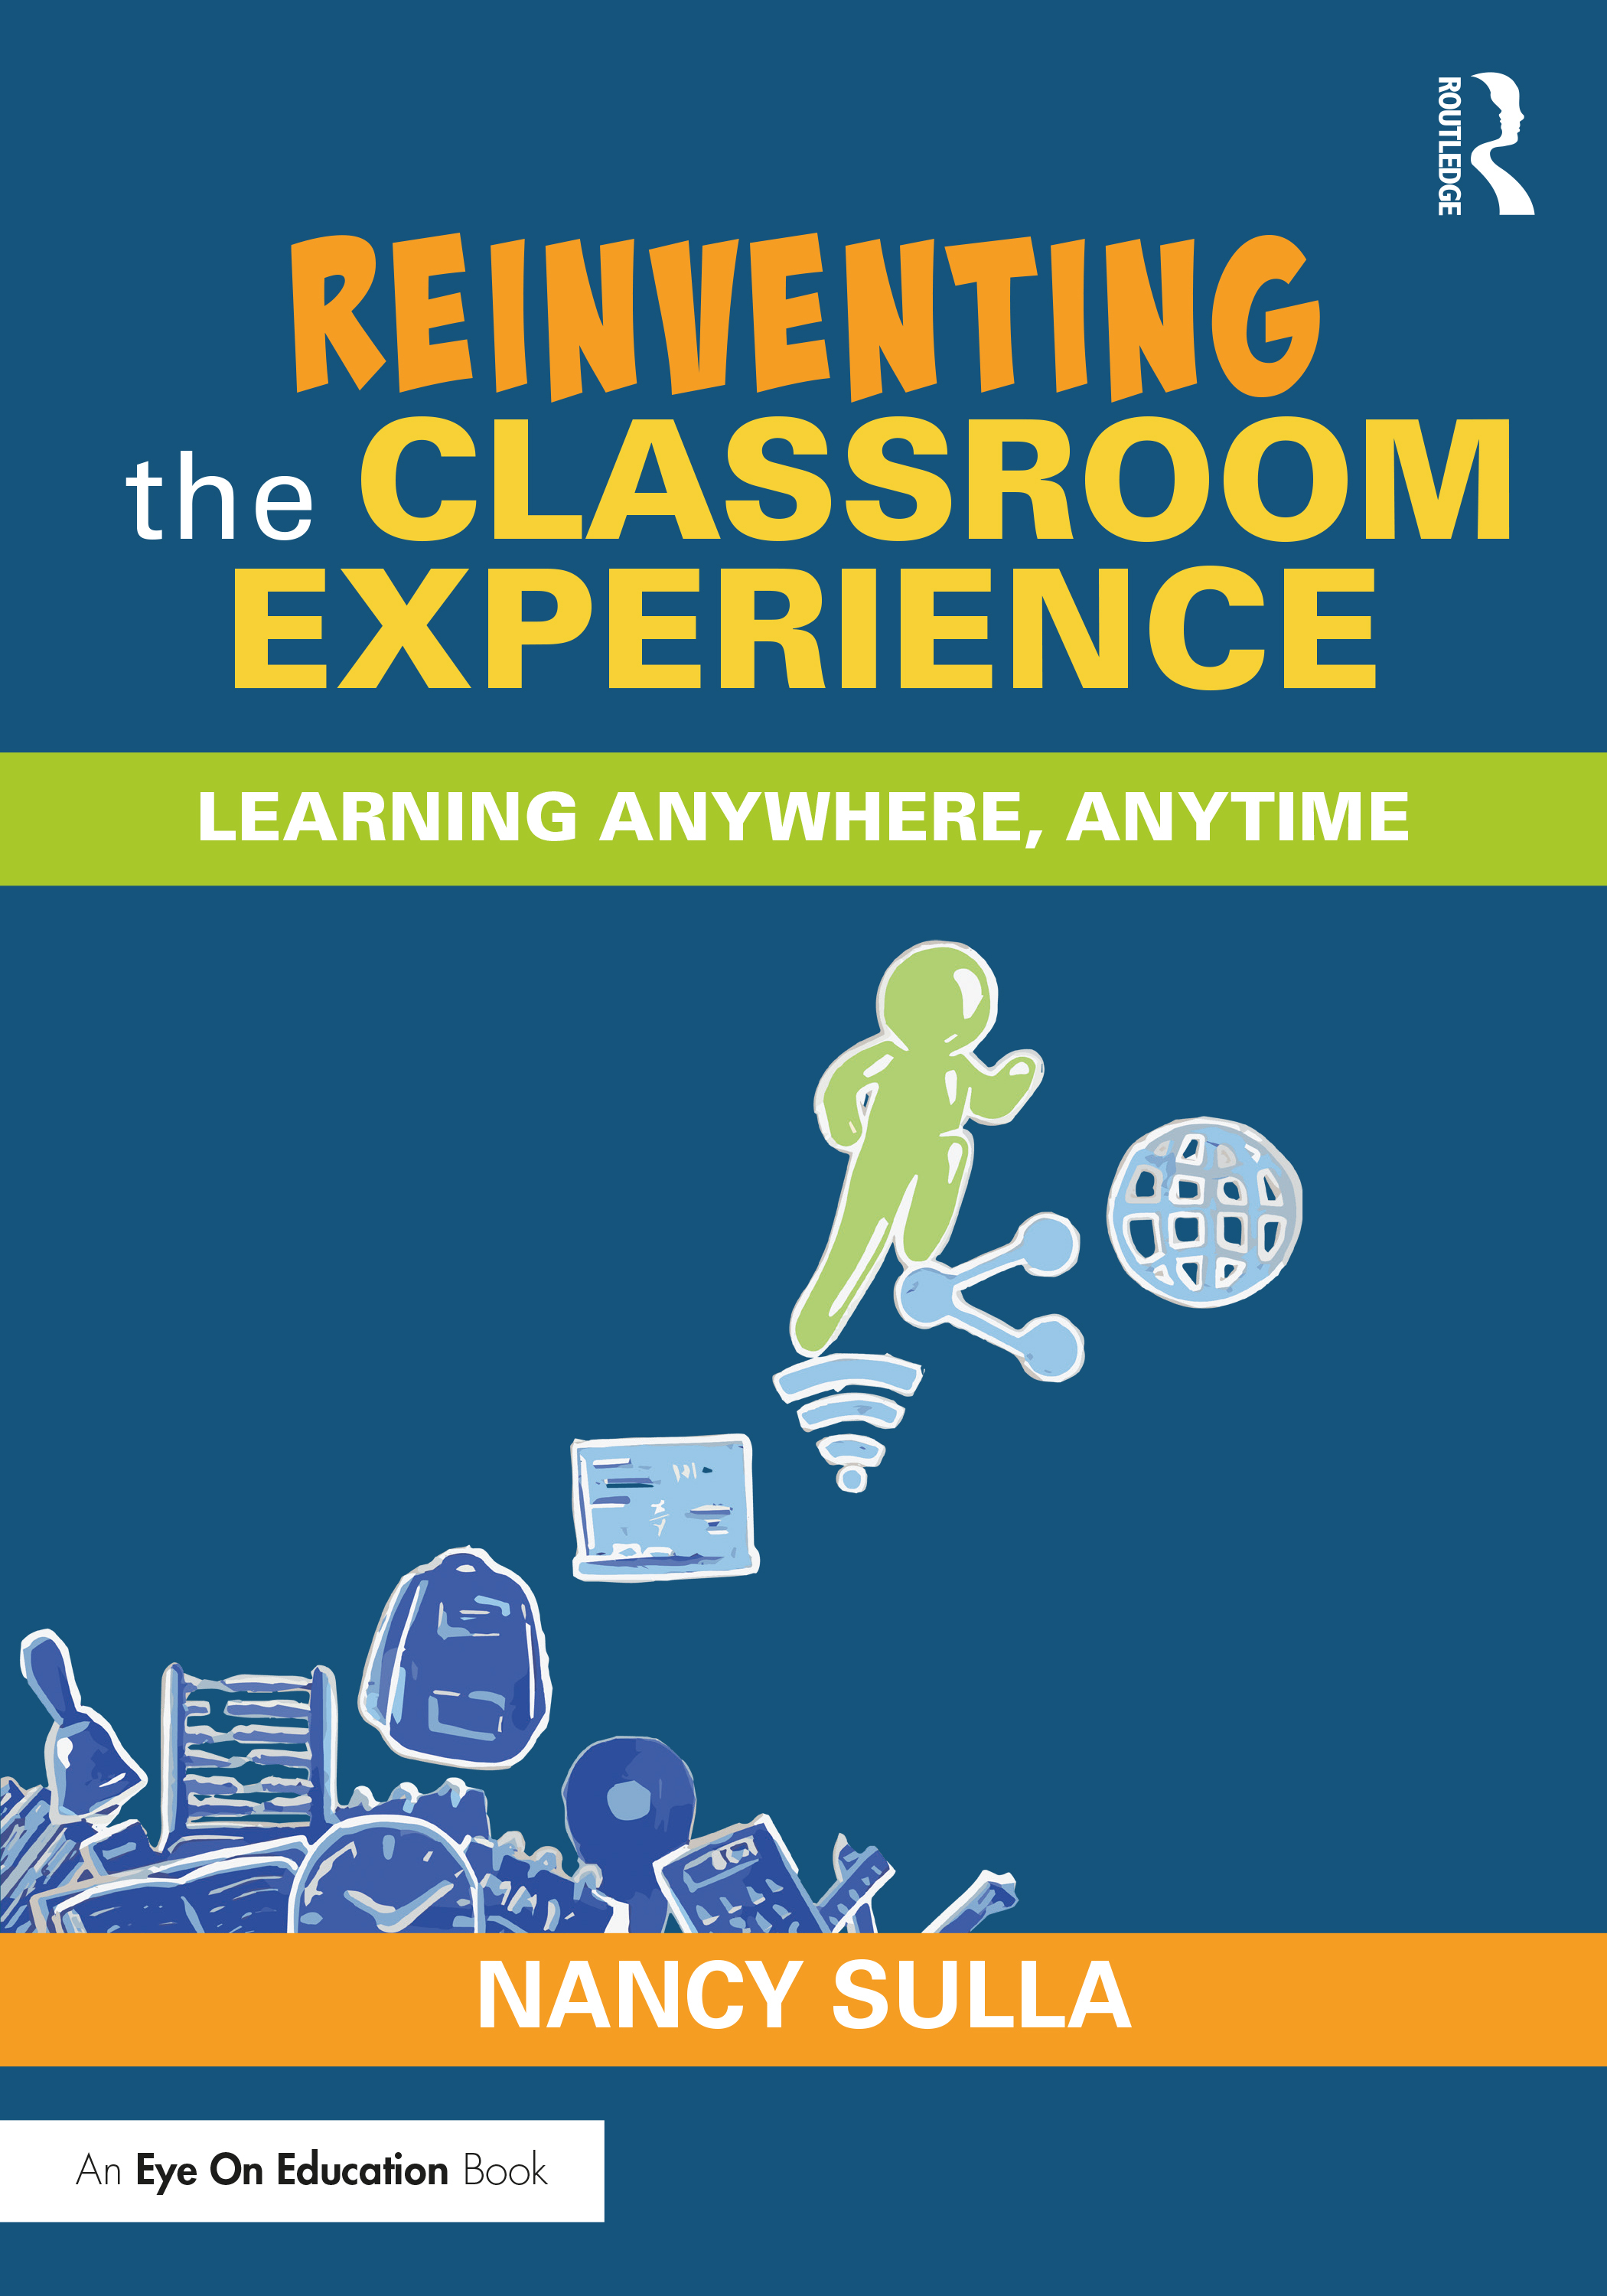 Reinventing the Classroom Experience